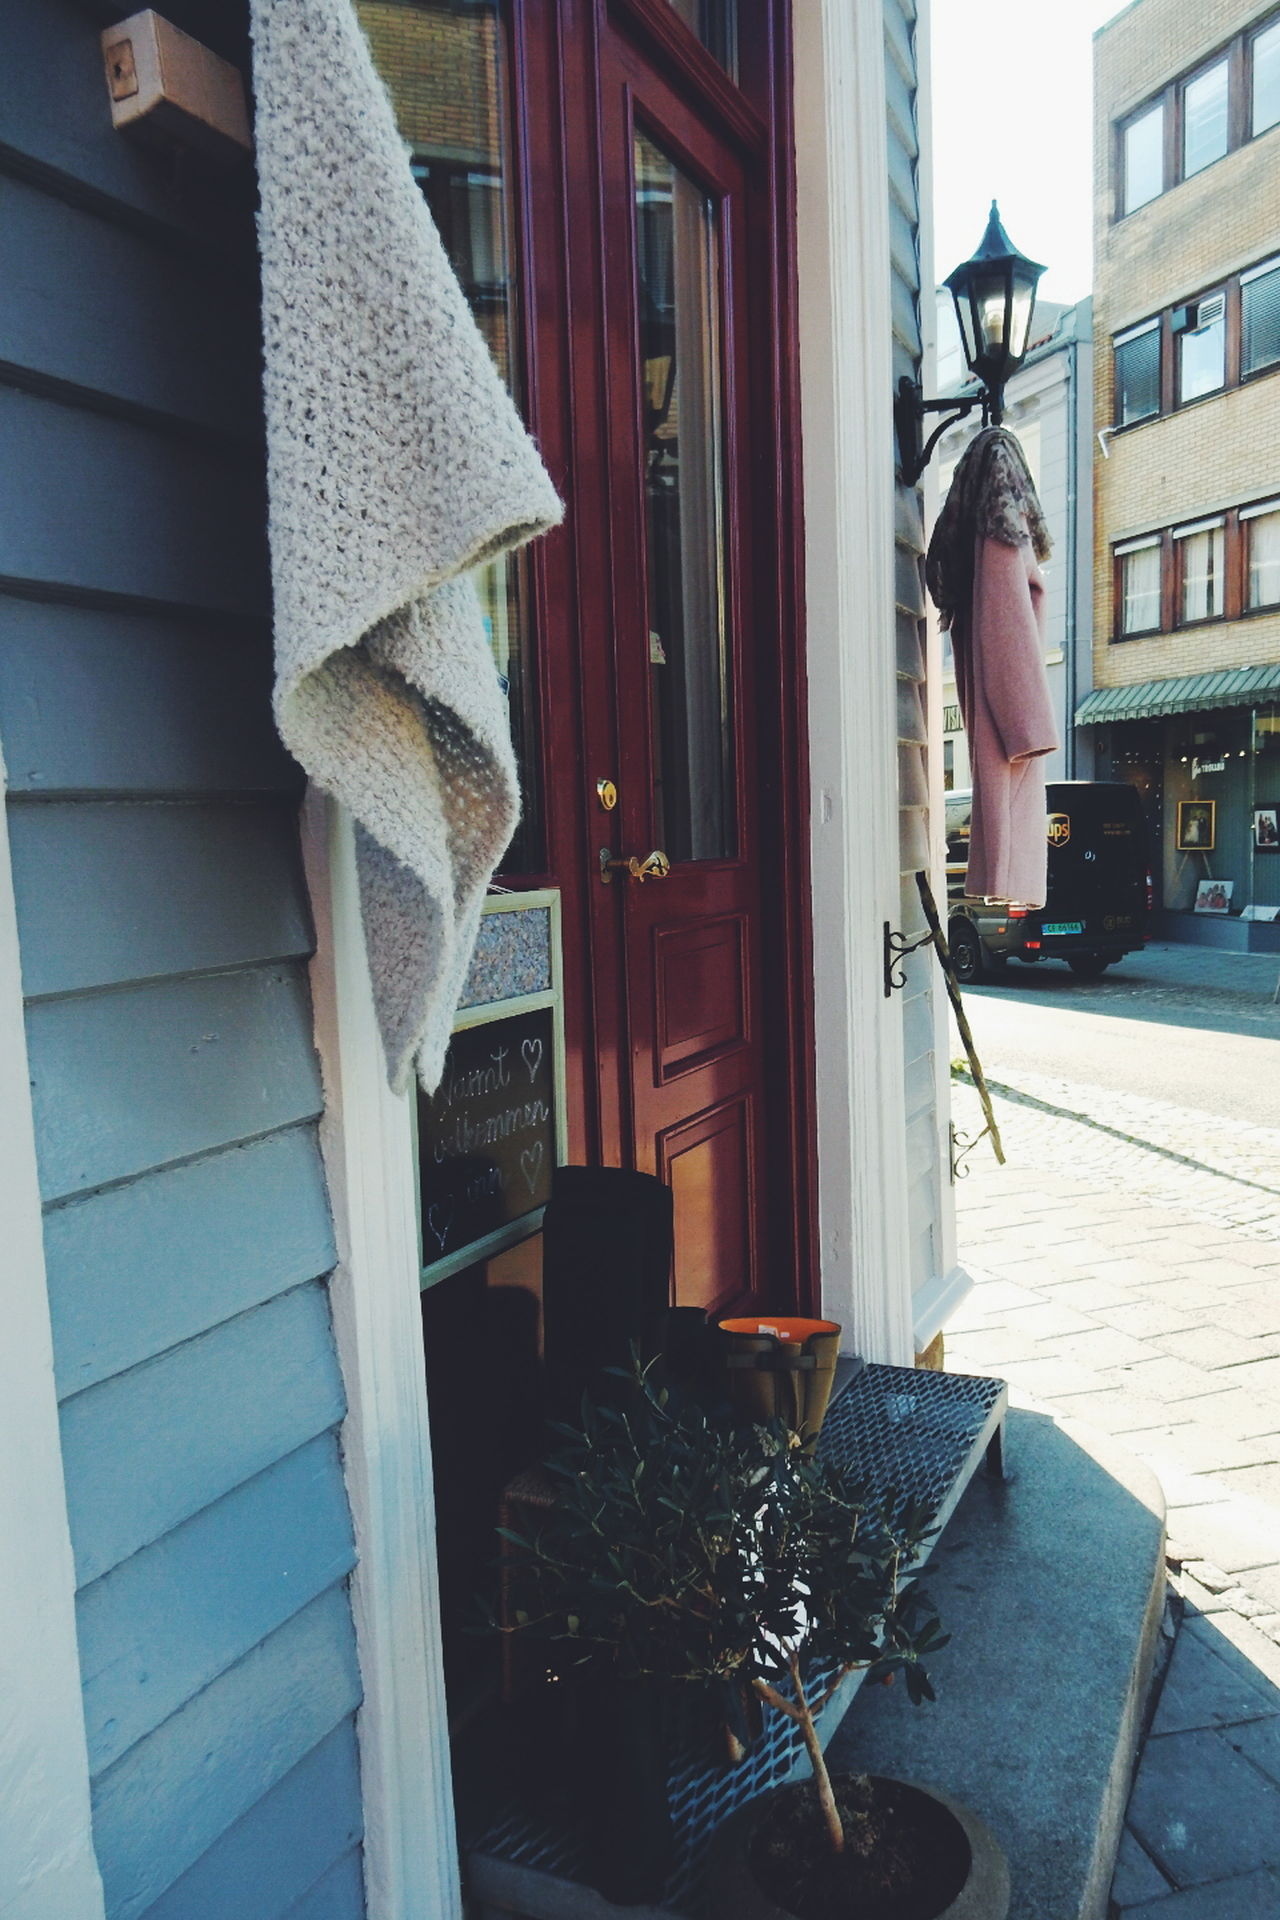 The Shop Around The Corner Shop Clothing Store Corner Cloths Fashion Norway Shopping Time Shopping Street Halden Norwegian Summer Building Exterior City Shop Window